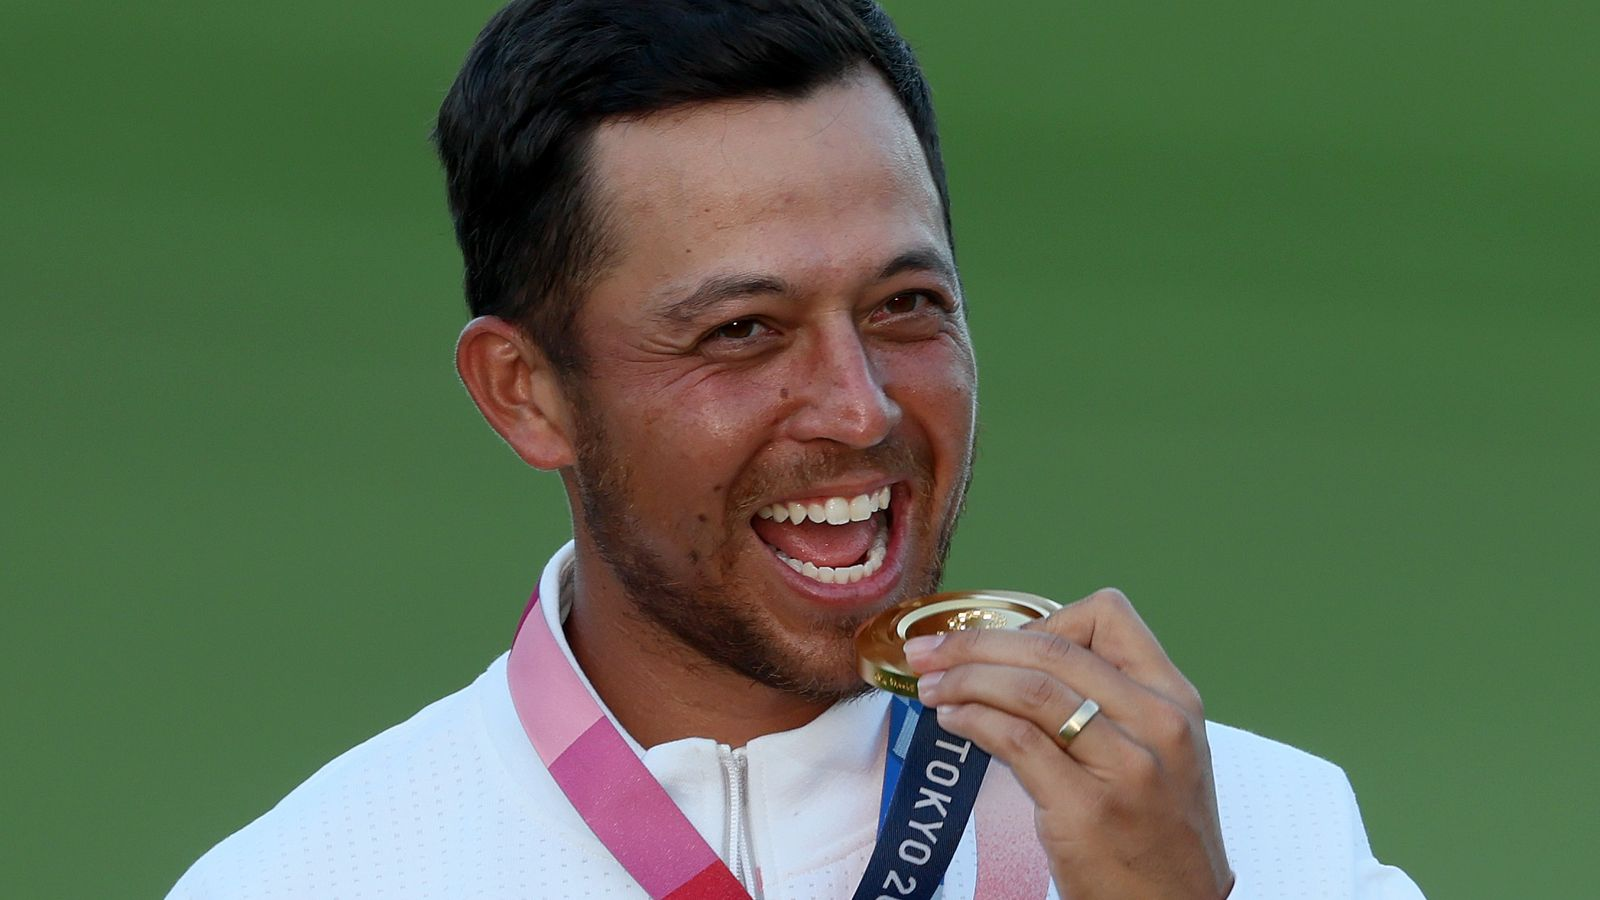 Tokyo Olympics: Xander Schauffele wins golf gold as Rory McIlroy, Paul Casey miss out on medals